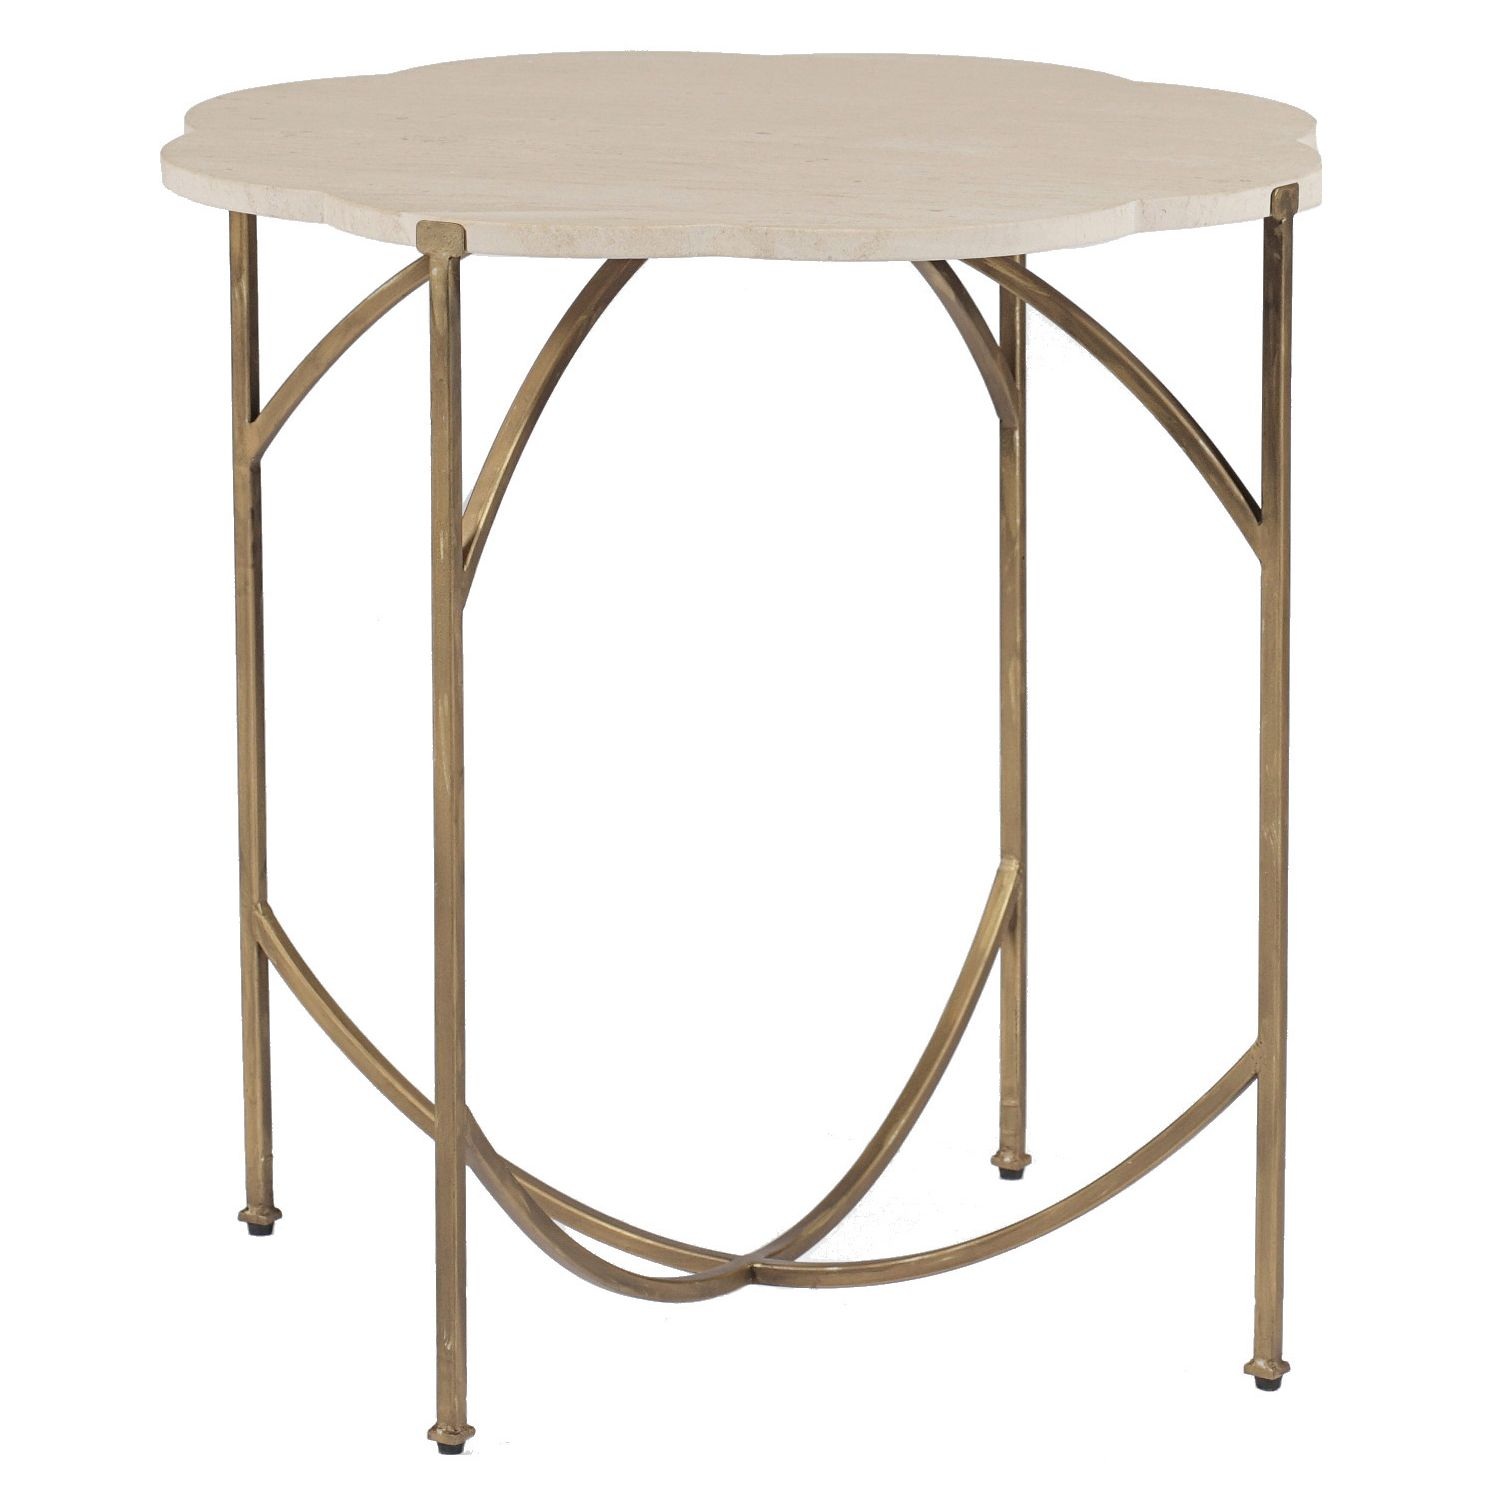 "Gabby Furniture Gillian Flower Side Table Layla Grayce 24""W x 24"